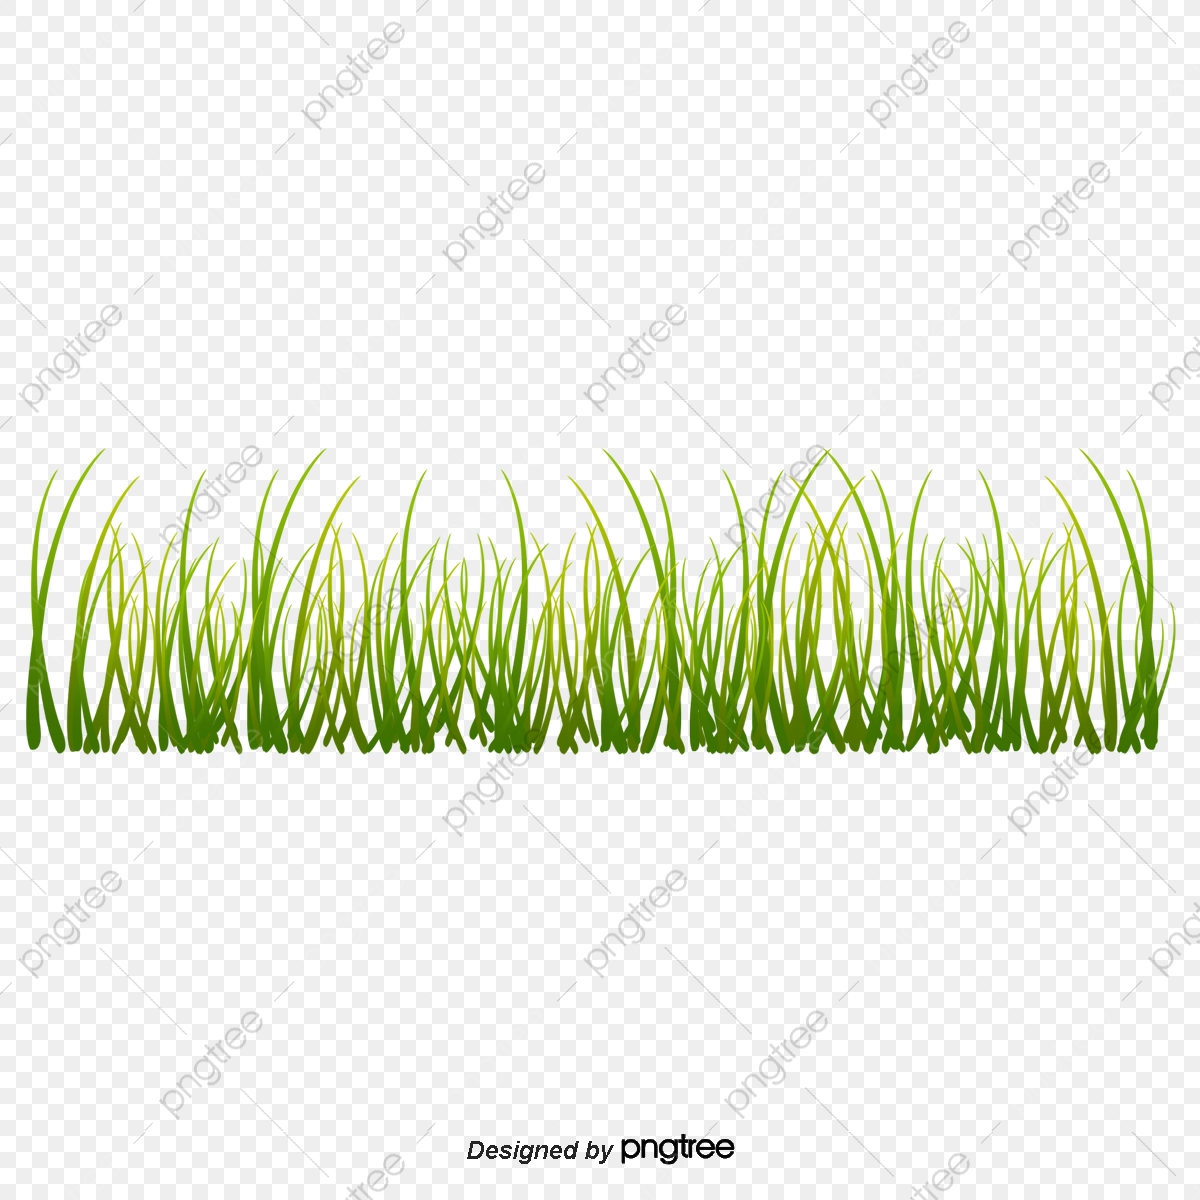 grass png vector psd and clipart with transparent background for free download pngtree https pngtree com freepng autumn grass 1330756 html